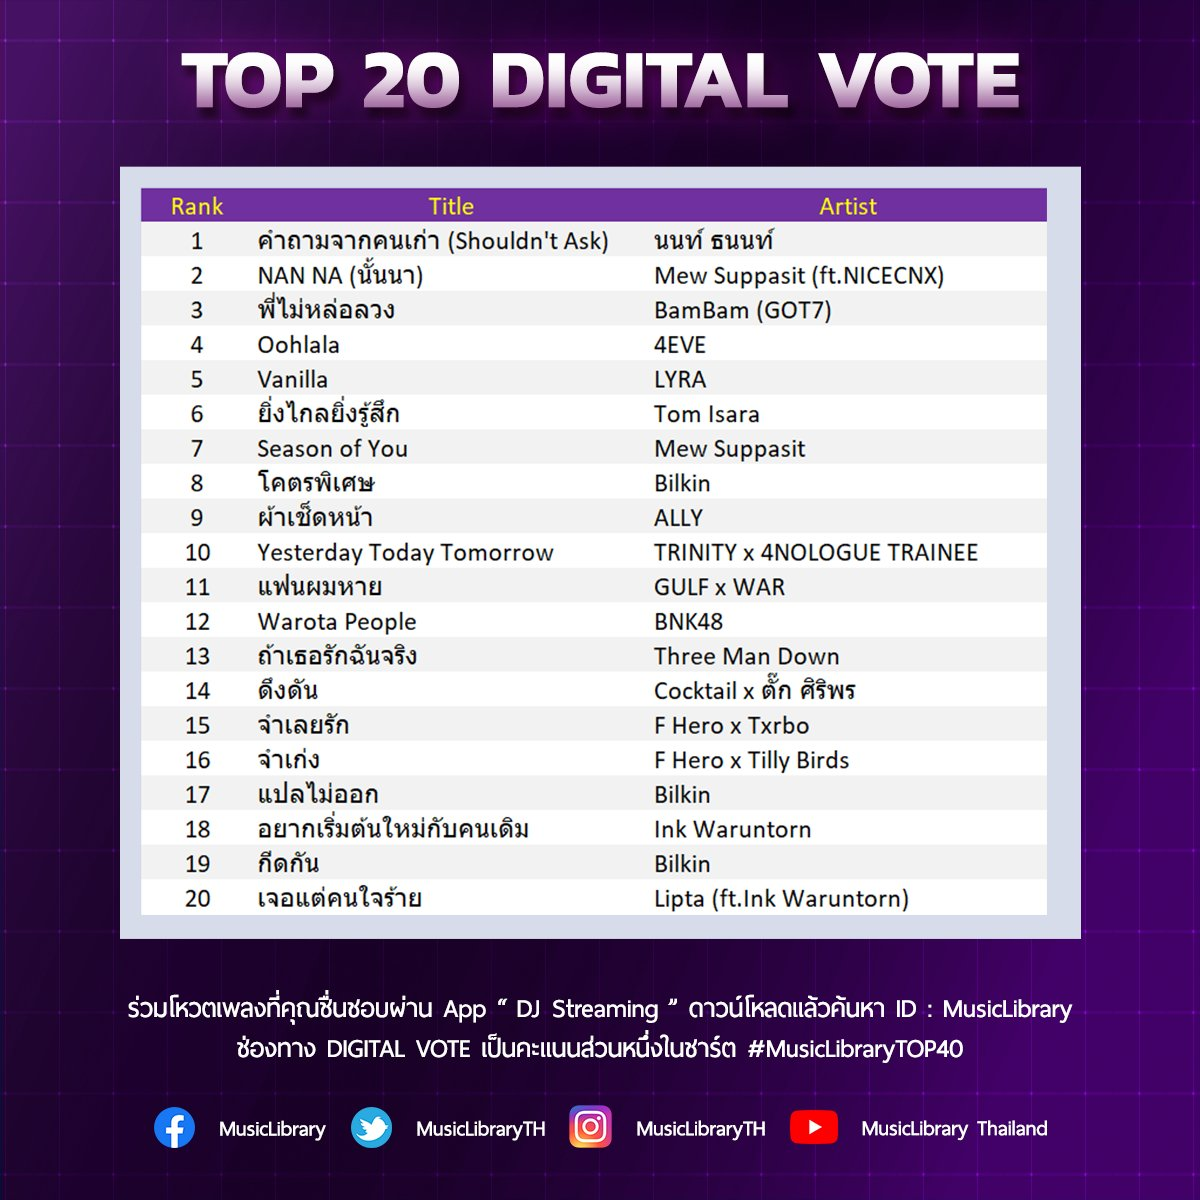 Top 20 Digital Vote #MusicLibrary  1.#คำถามจากคนเก่า - #NONTTANONT 2.#MSSxNANNA - #MewSuppasit (ft.#NICECNX) 3.#พี่ไม่หล่อลวง - #BamBam (#GOT7)  📲Digital Vote เป็นคะแนนส่วนหนึ่งในชาร์ต #MusicLibraryTOP40 (Youtube,Digital Vote,Spin,Spotify) >>